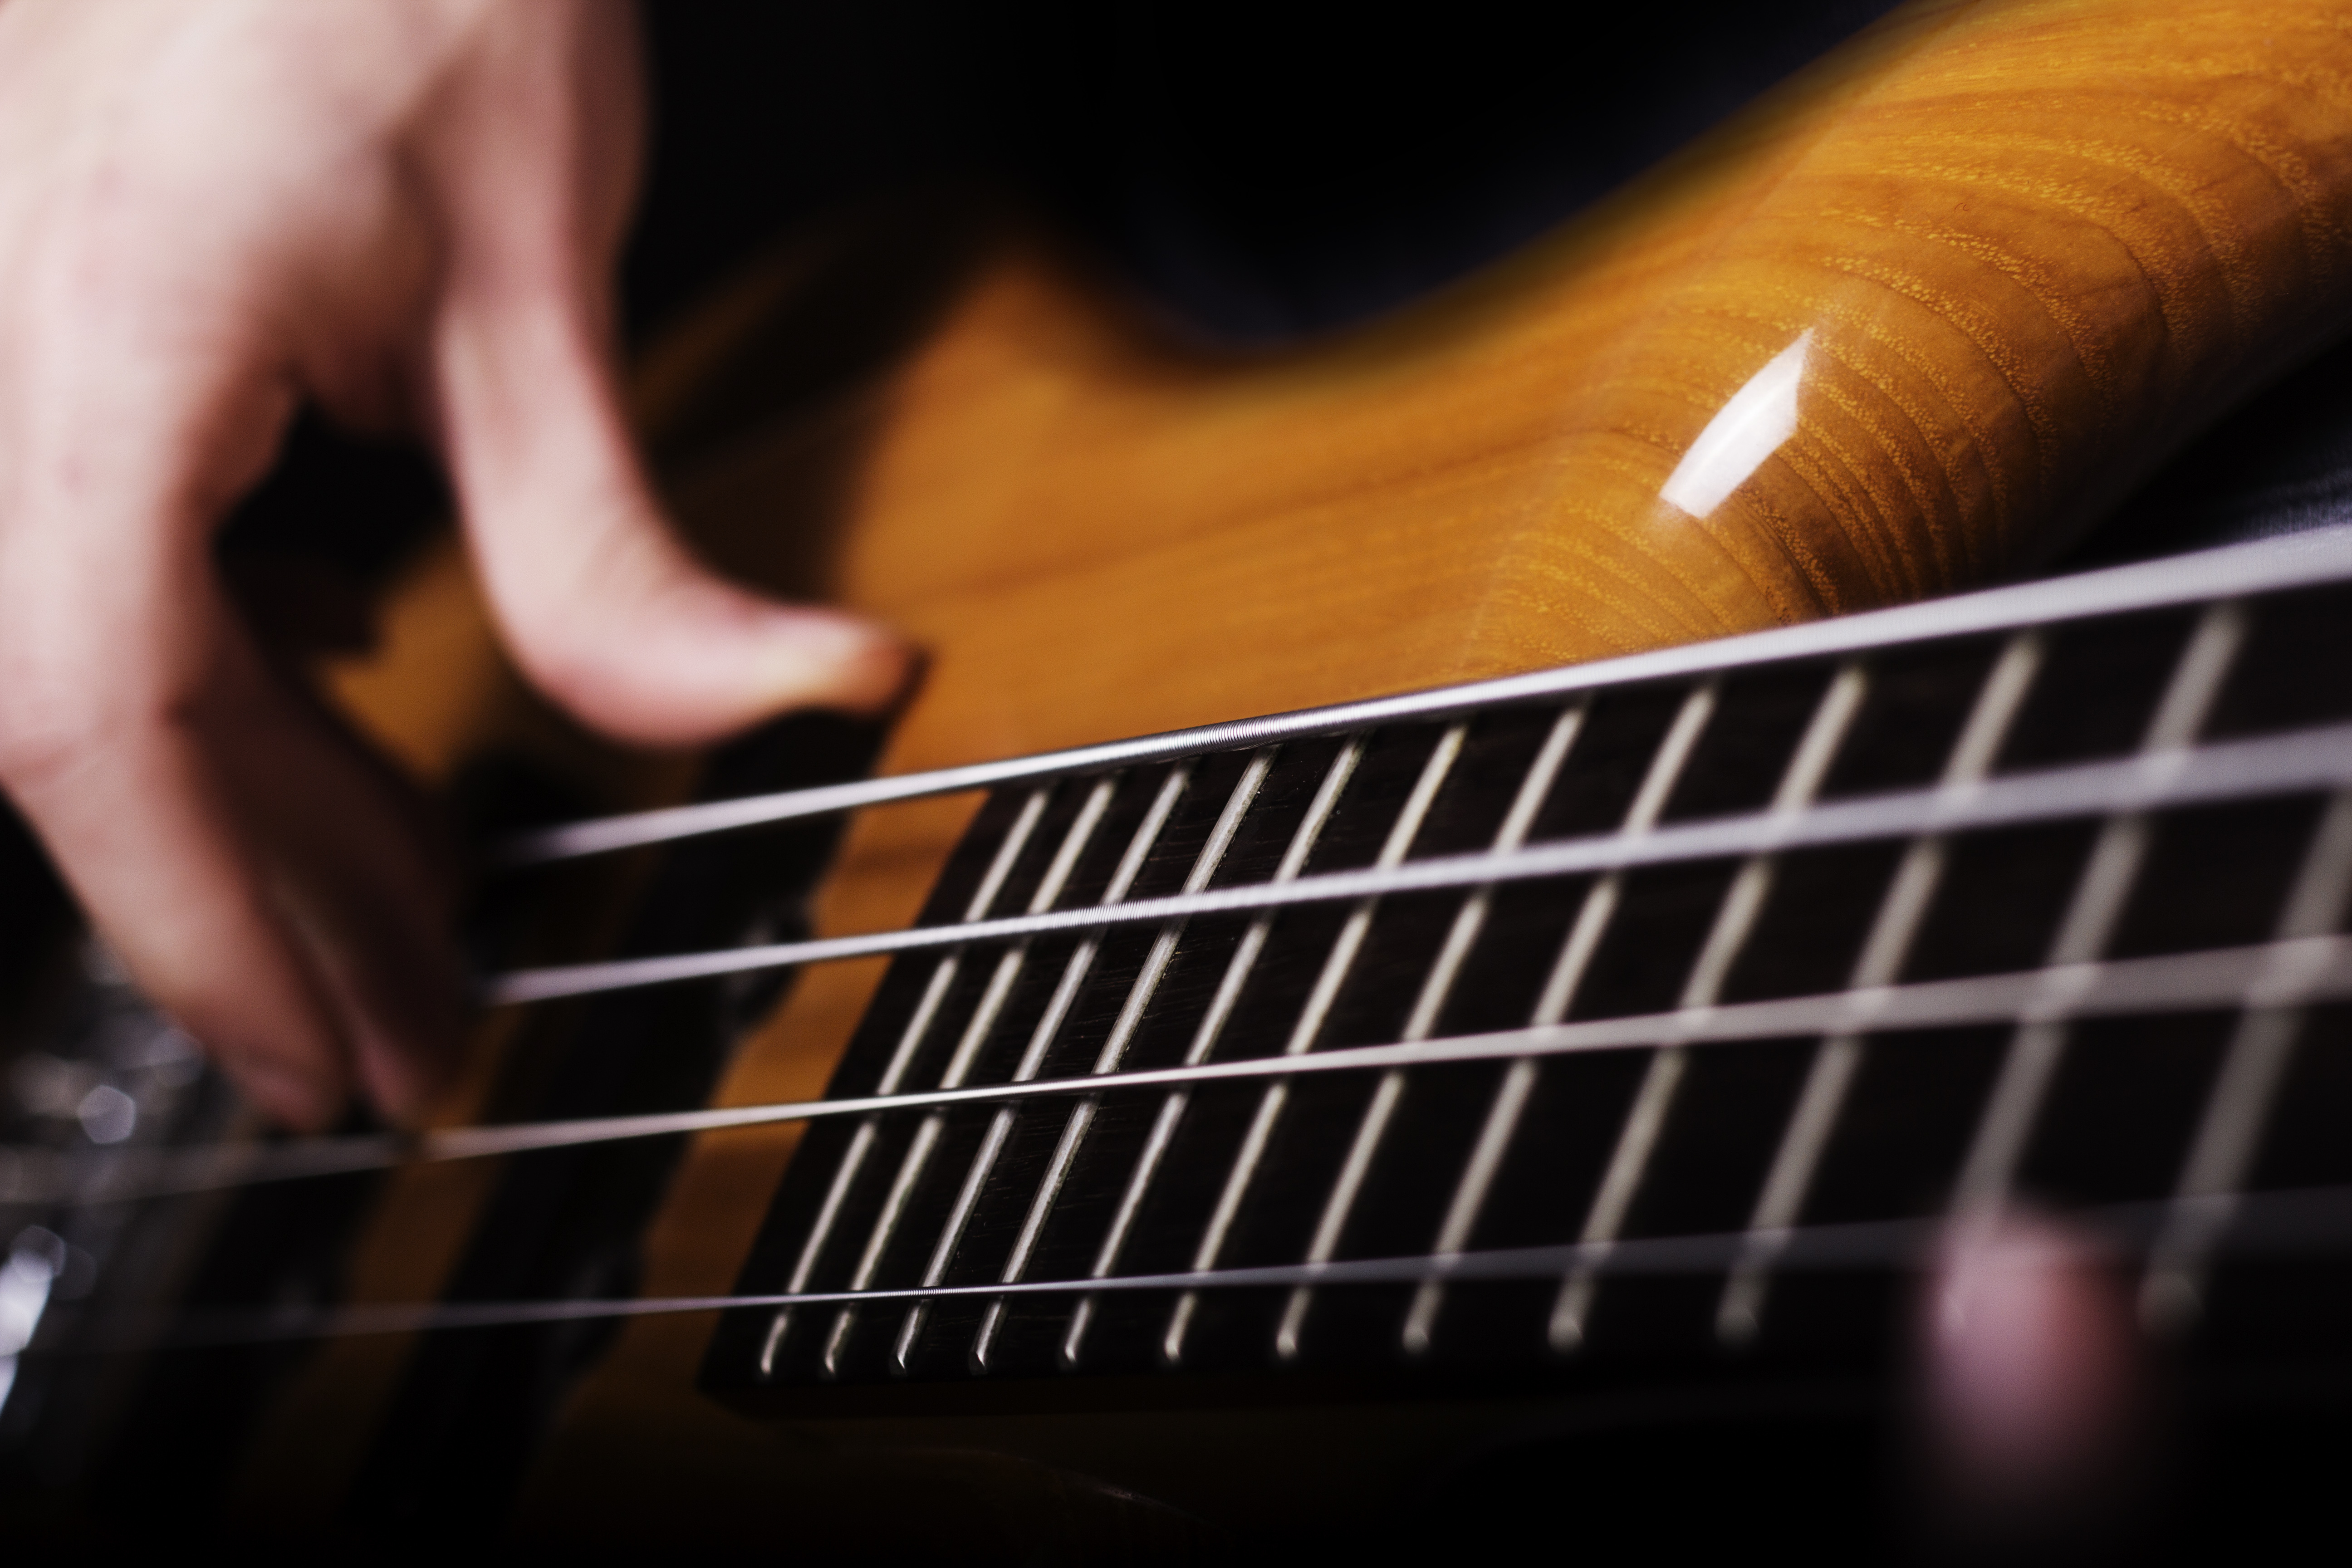 Qualities To Look For In A Bassist